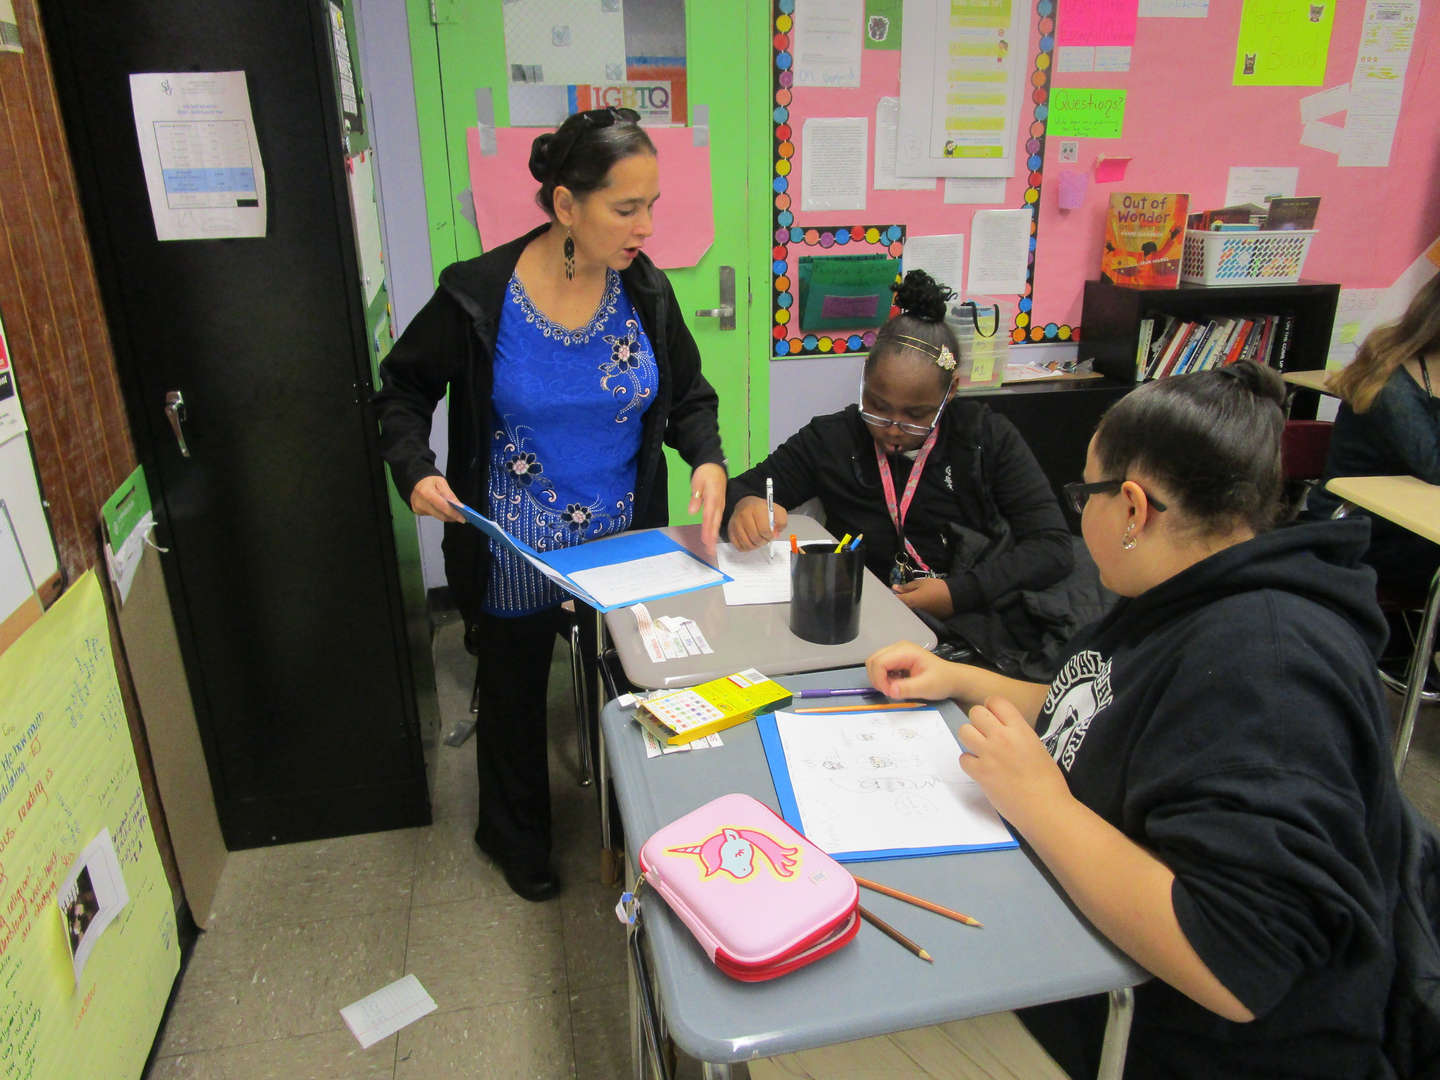 Teacher assists two students.